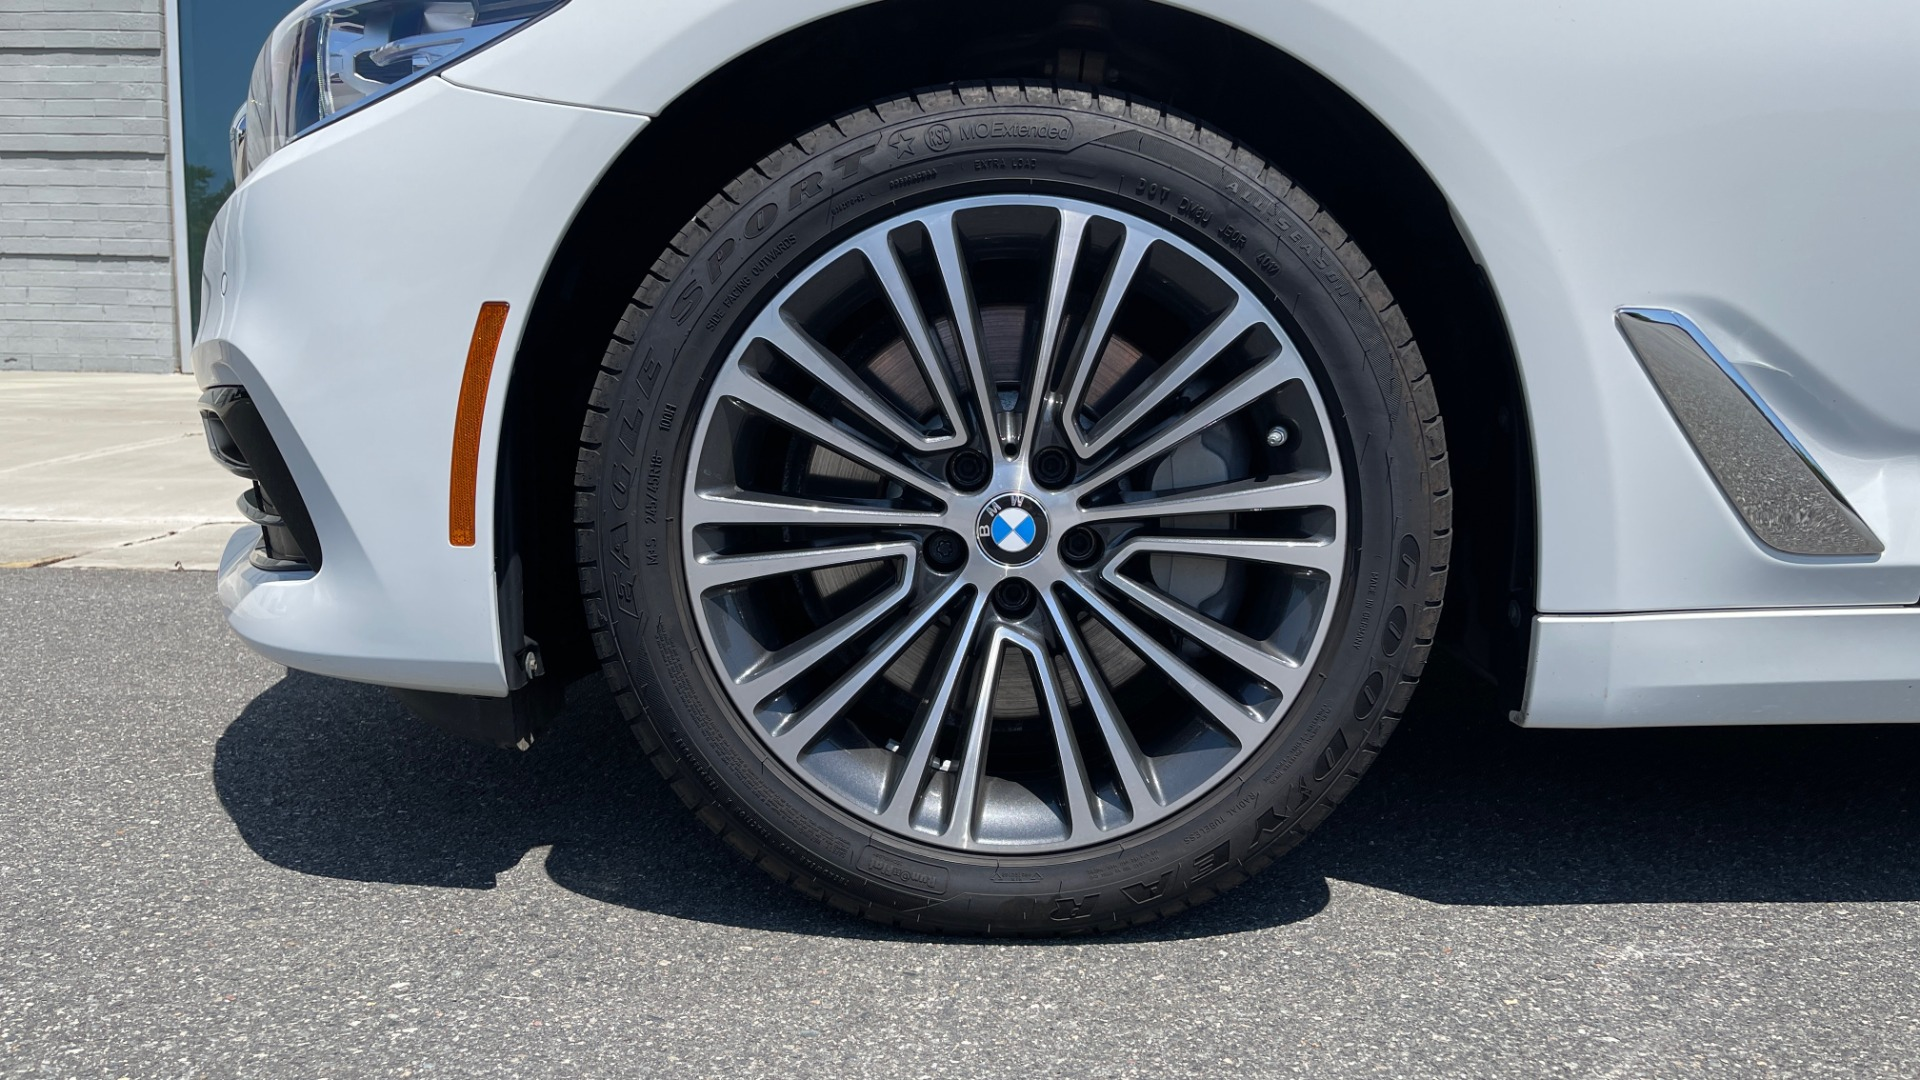 Used 2018 BMW 5 SERIES 540IXDRIVE PREMIUM / PARK ASSIST / KEYLESS ENTRY / SUNROOF / REARVIEW for sale $42,995 at Formula Imports in Charlotte NC 28227 72